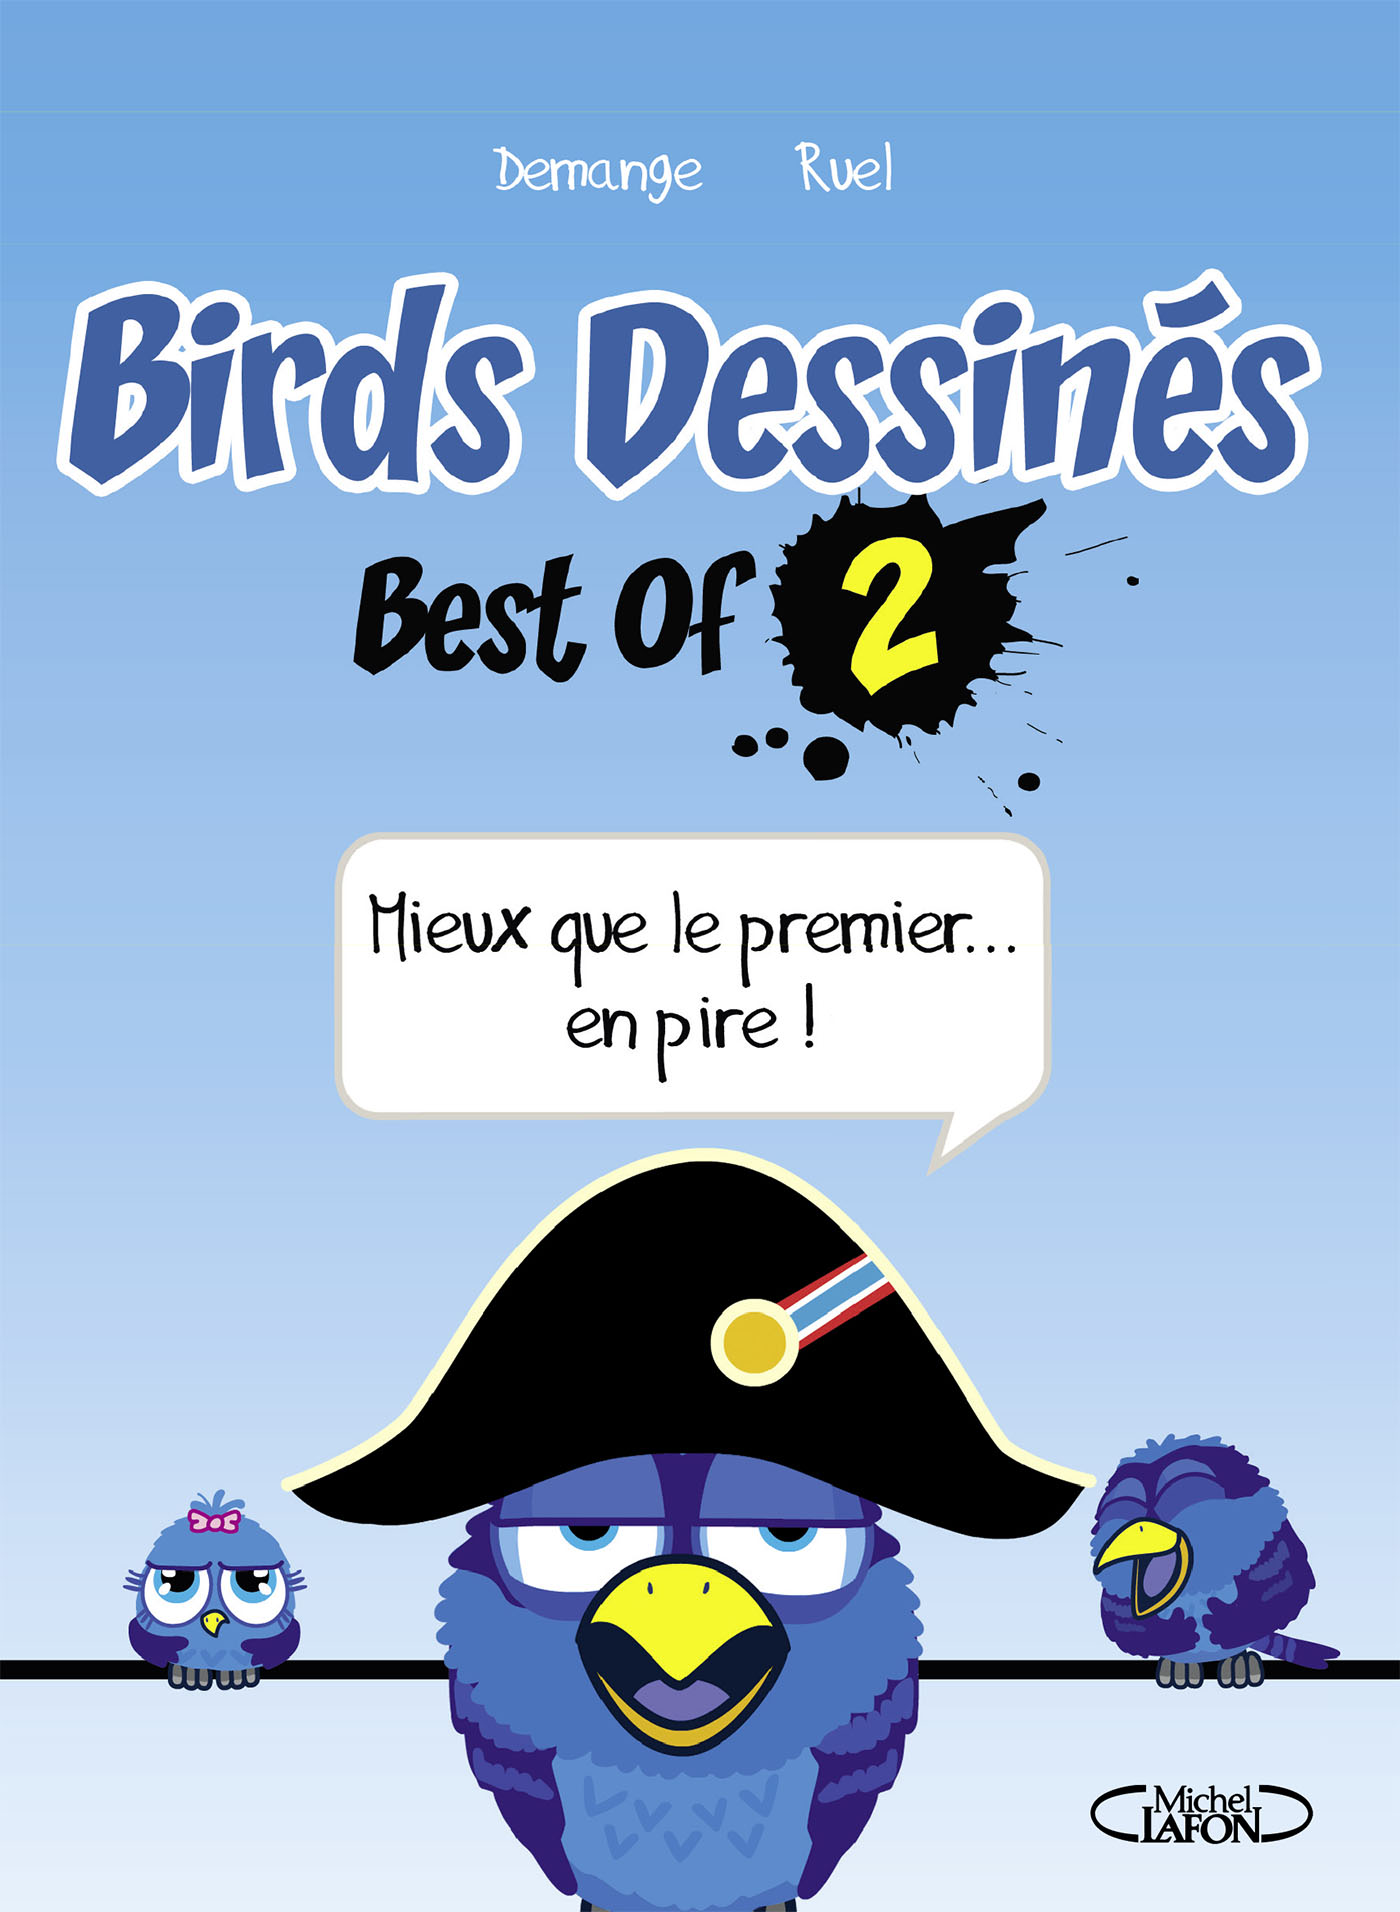 Birds dessinés – Best of 2